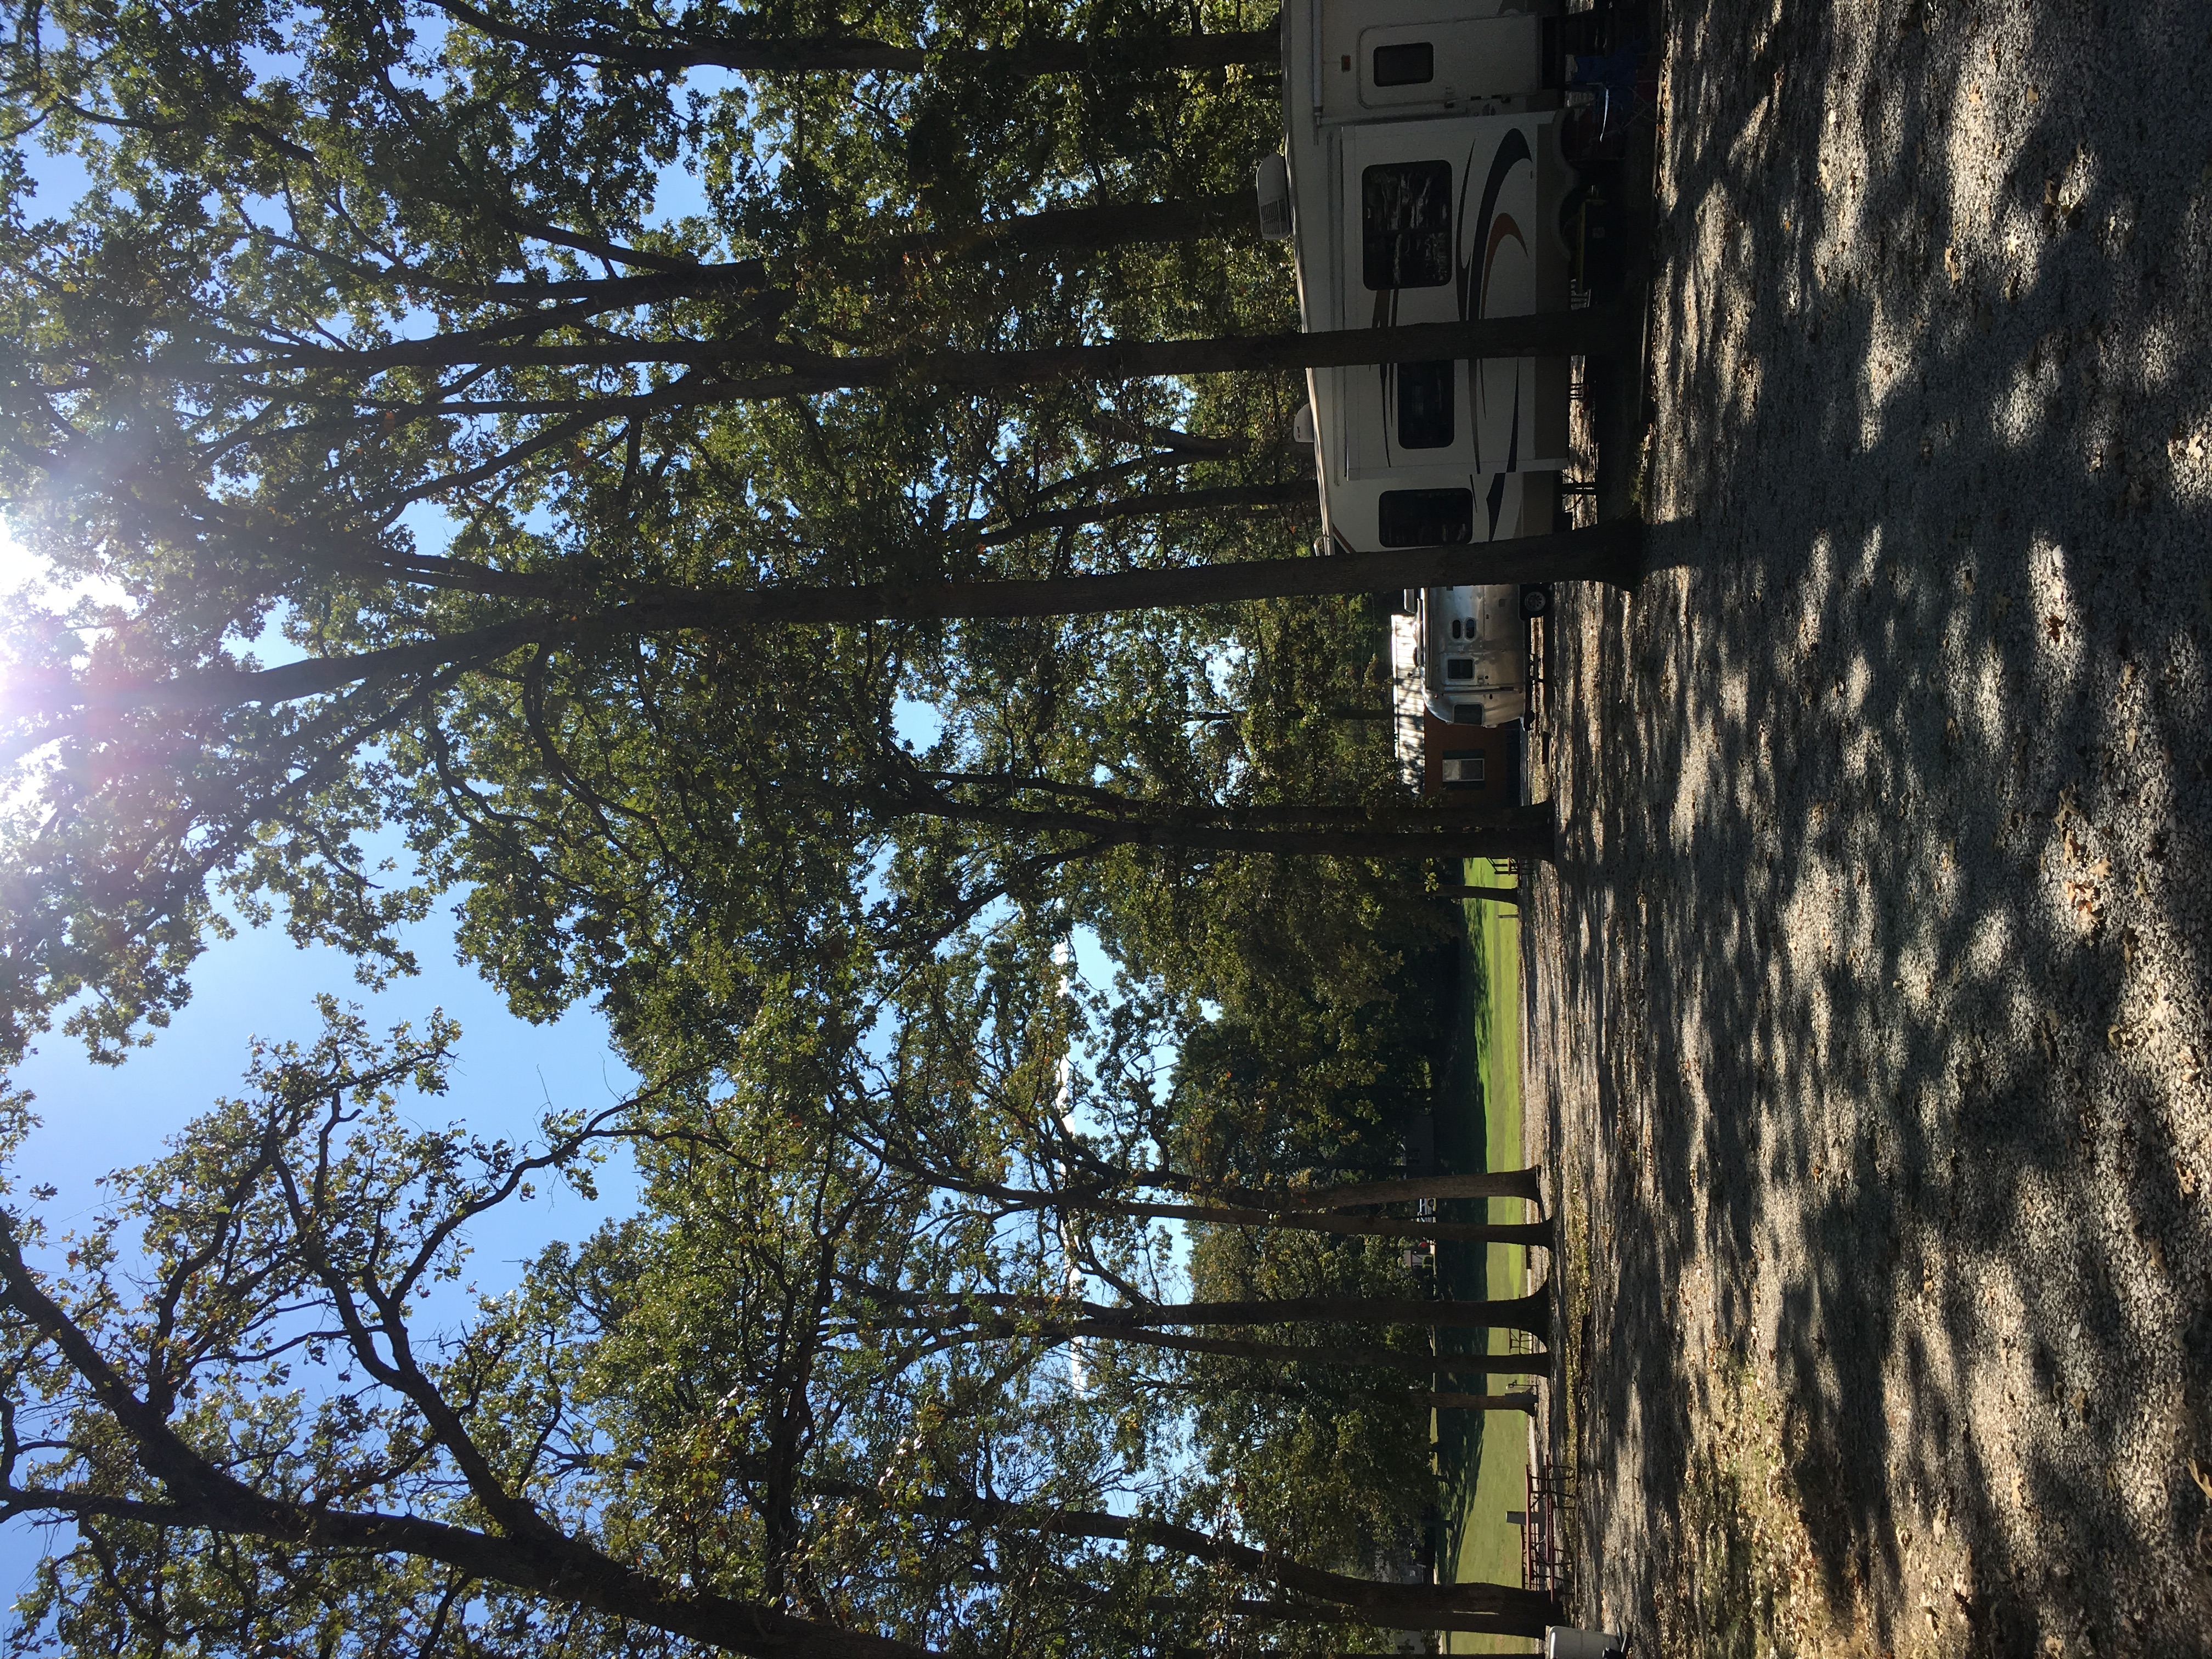 Mature shade trees throughout the campground